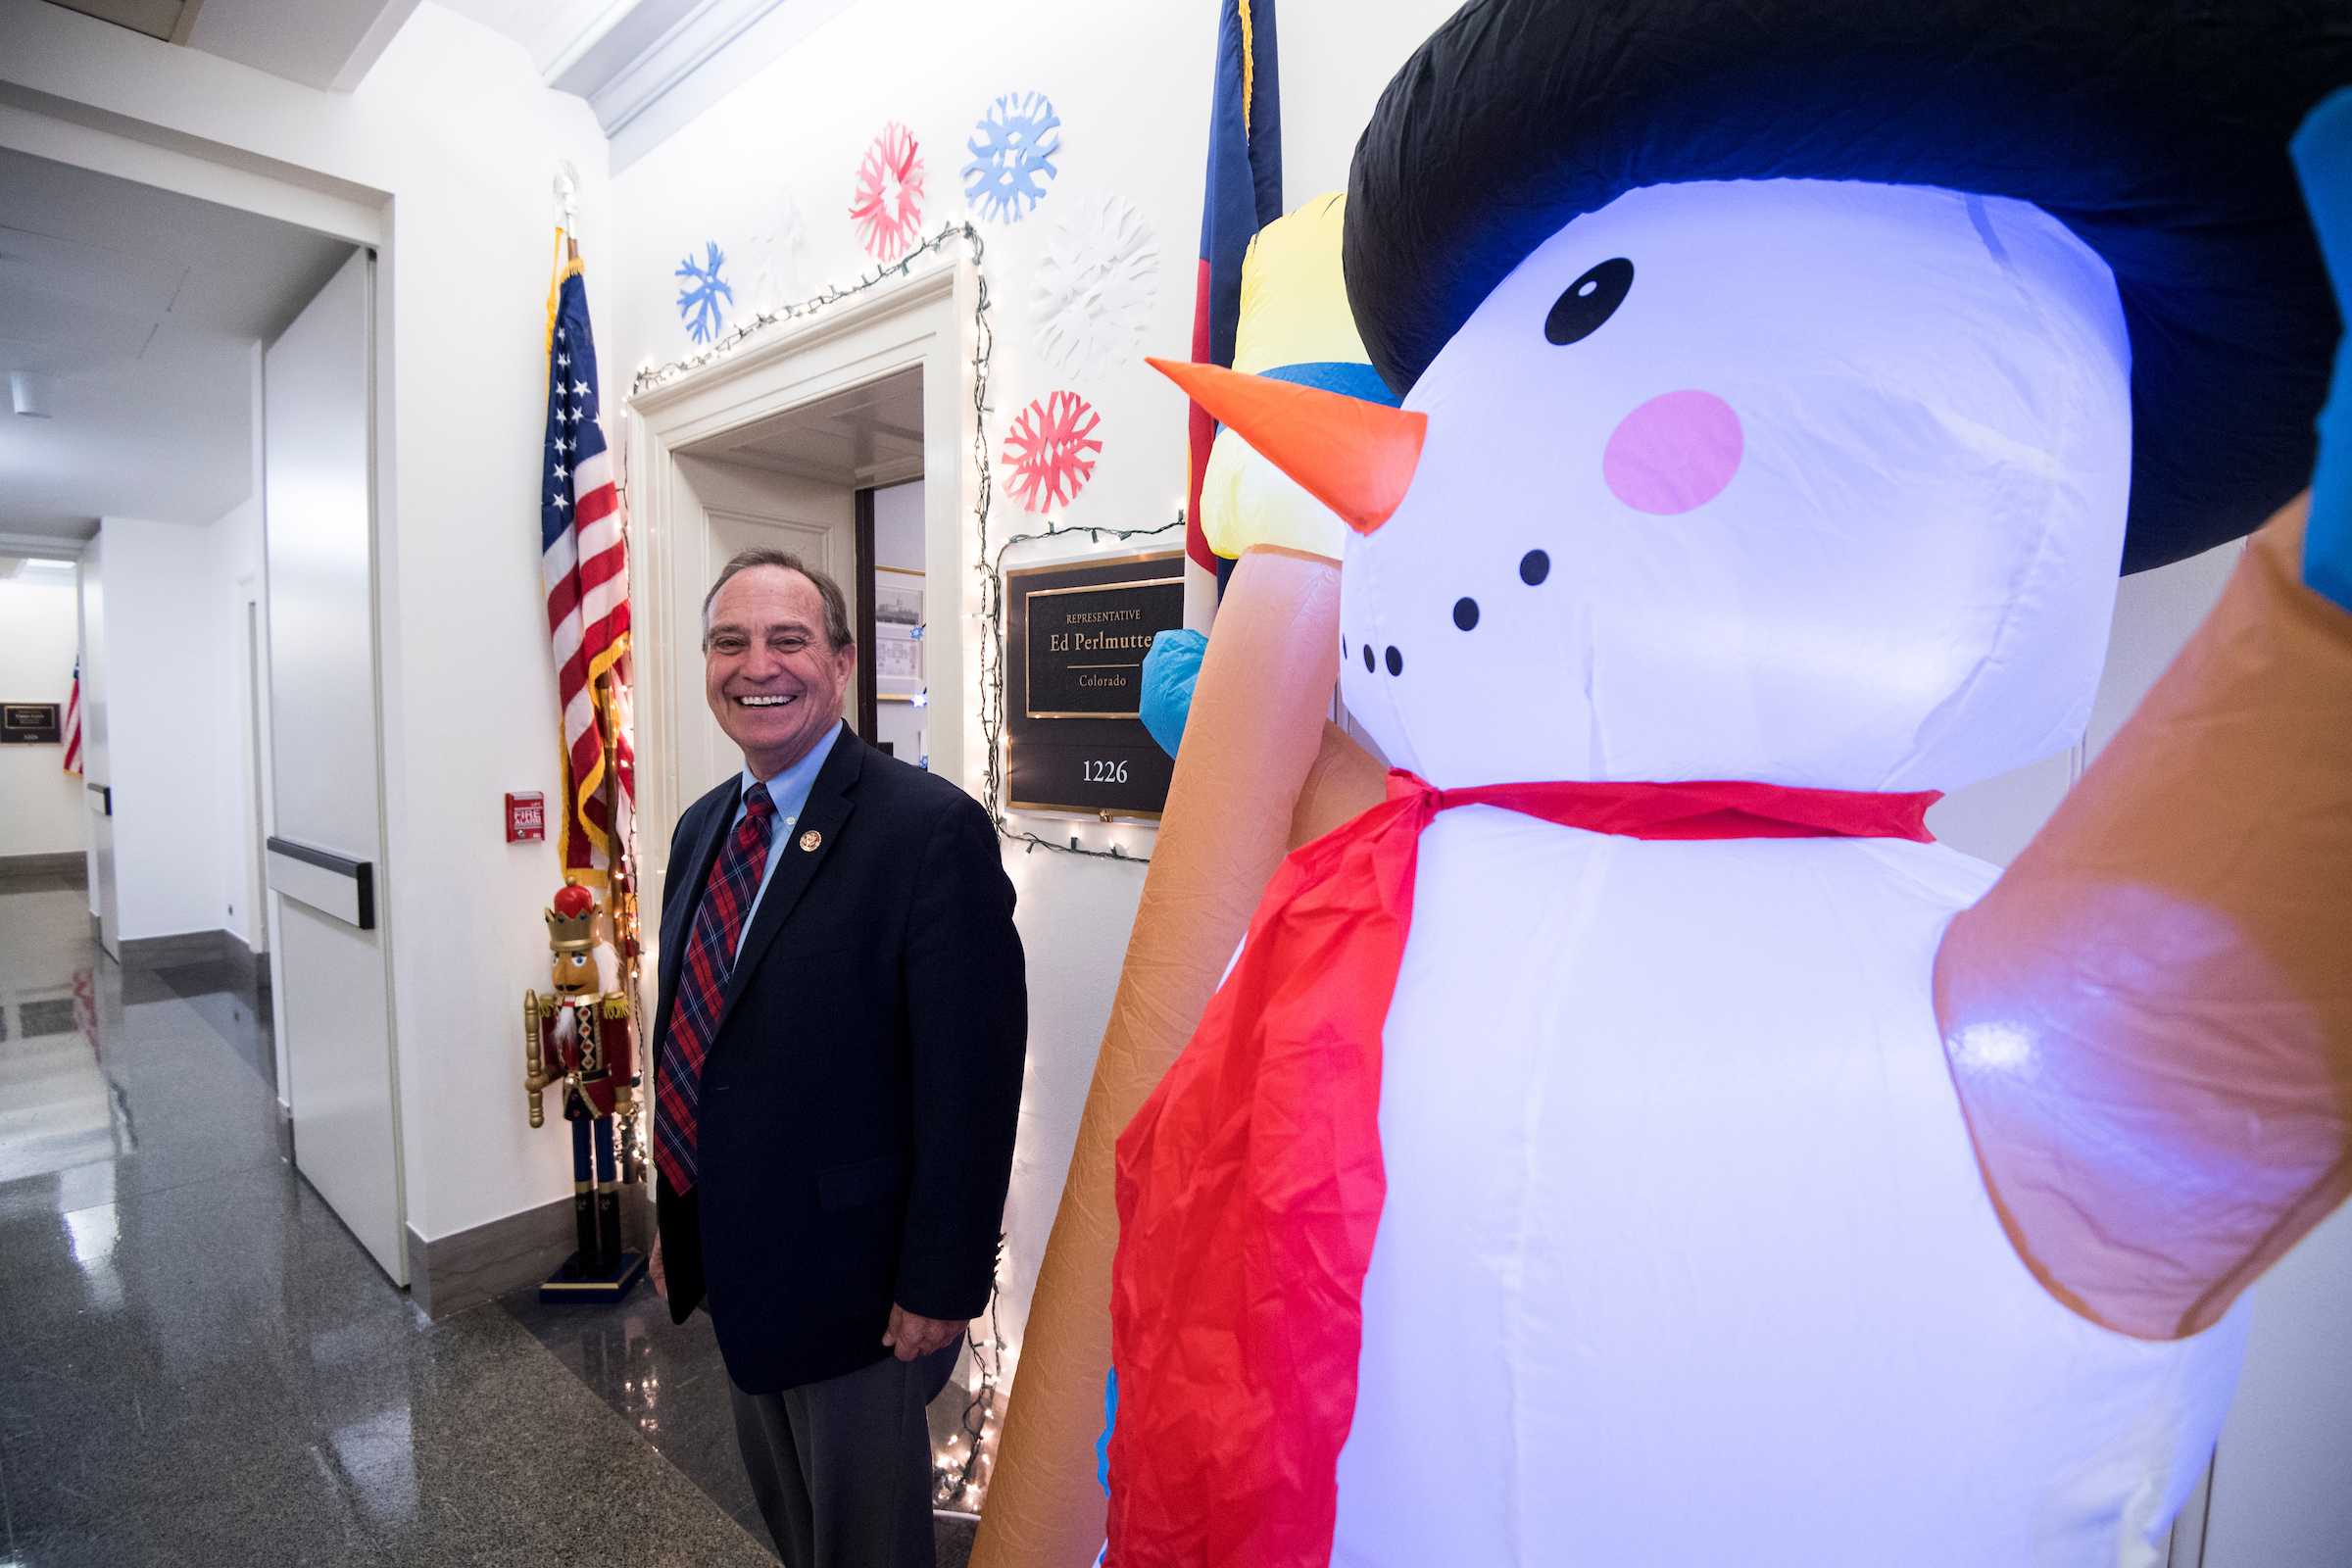 Colorado Rep. Ed Perlmutter with the inflatable snowman outside his office in Longworth that became the focus of a rivalry with Democrat Jason Crow. (Bill Clark/CQ Roll Call)